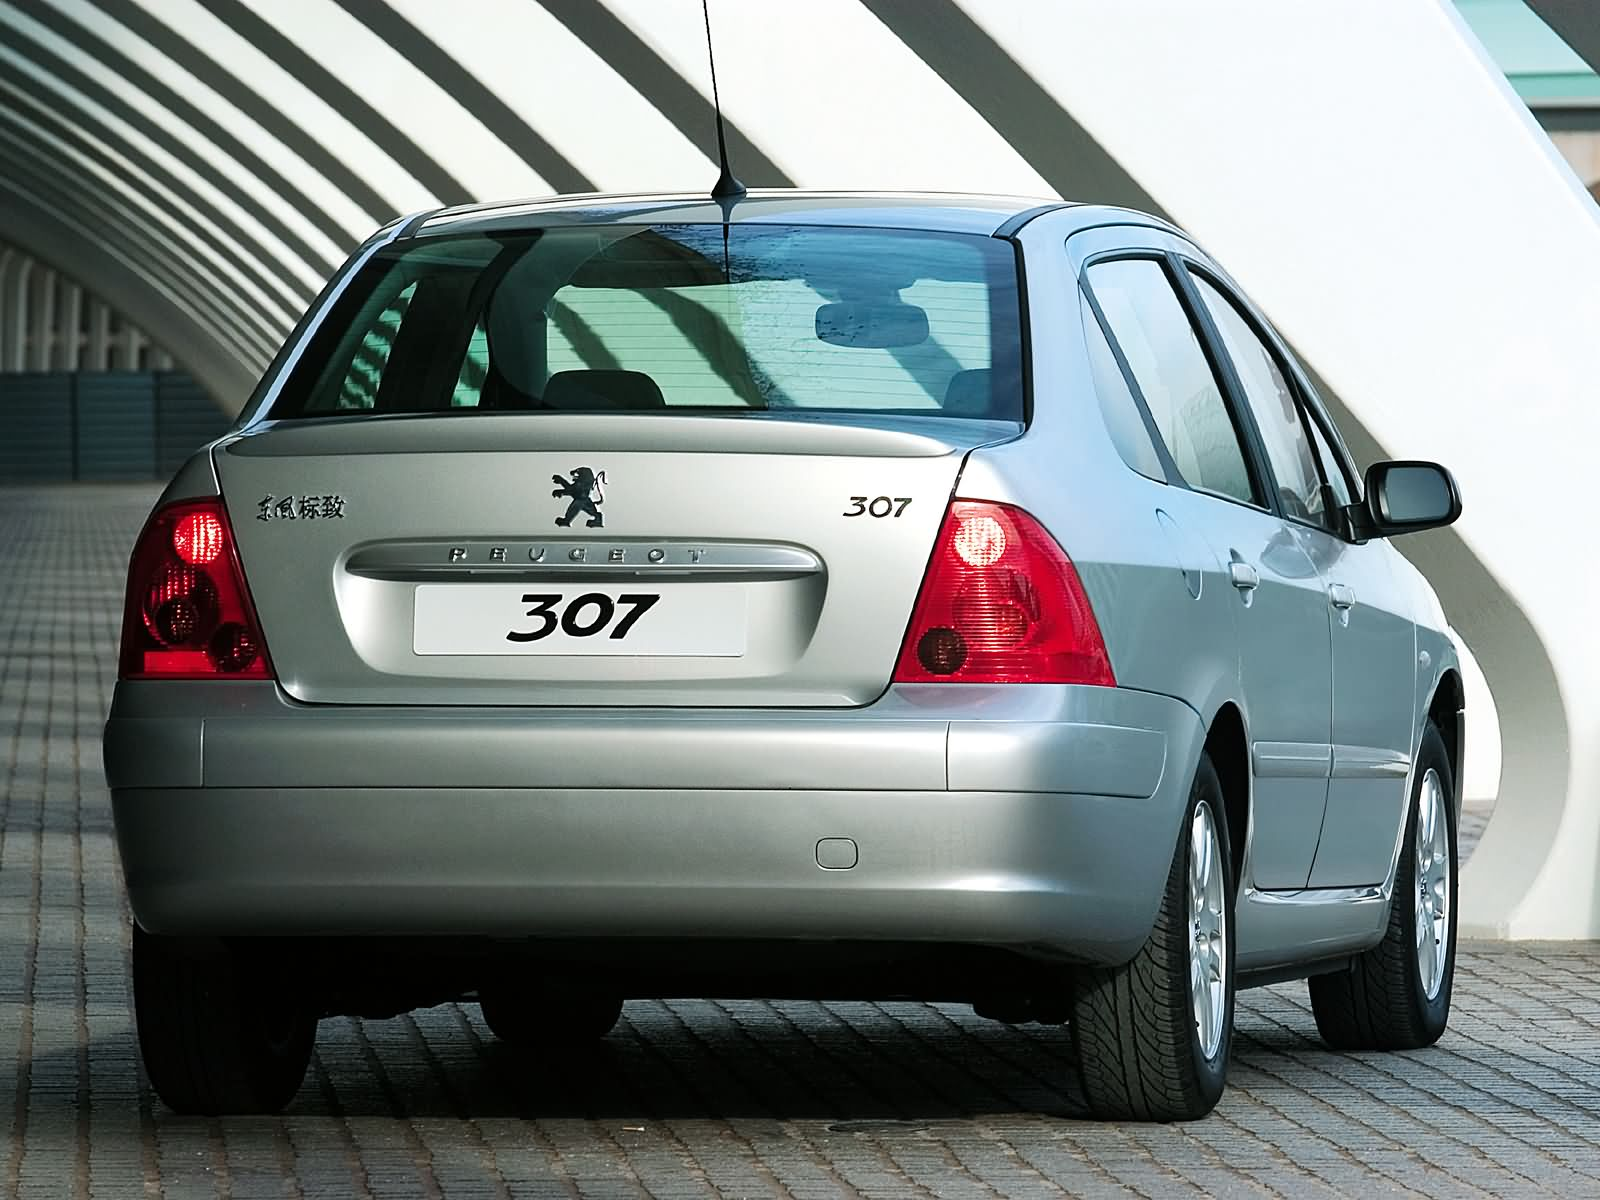 peugeot 307 photos - photogallery with 28 pics| carsbase